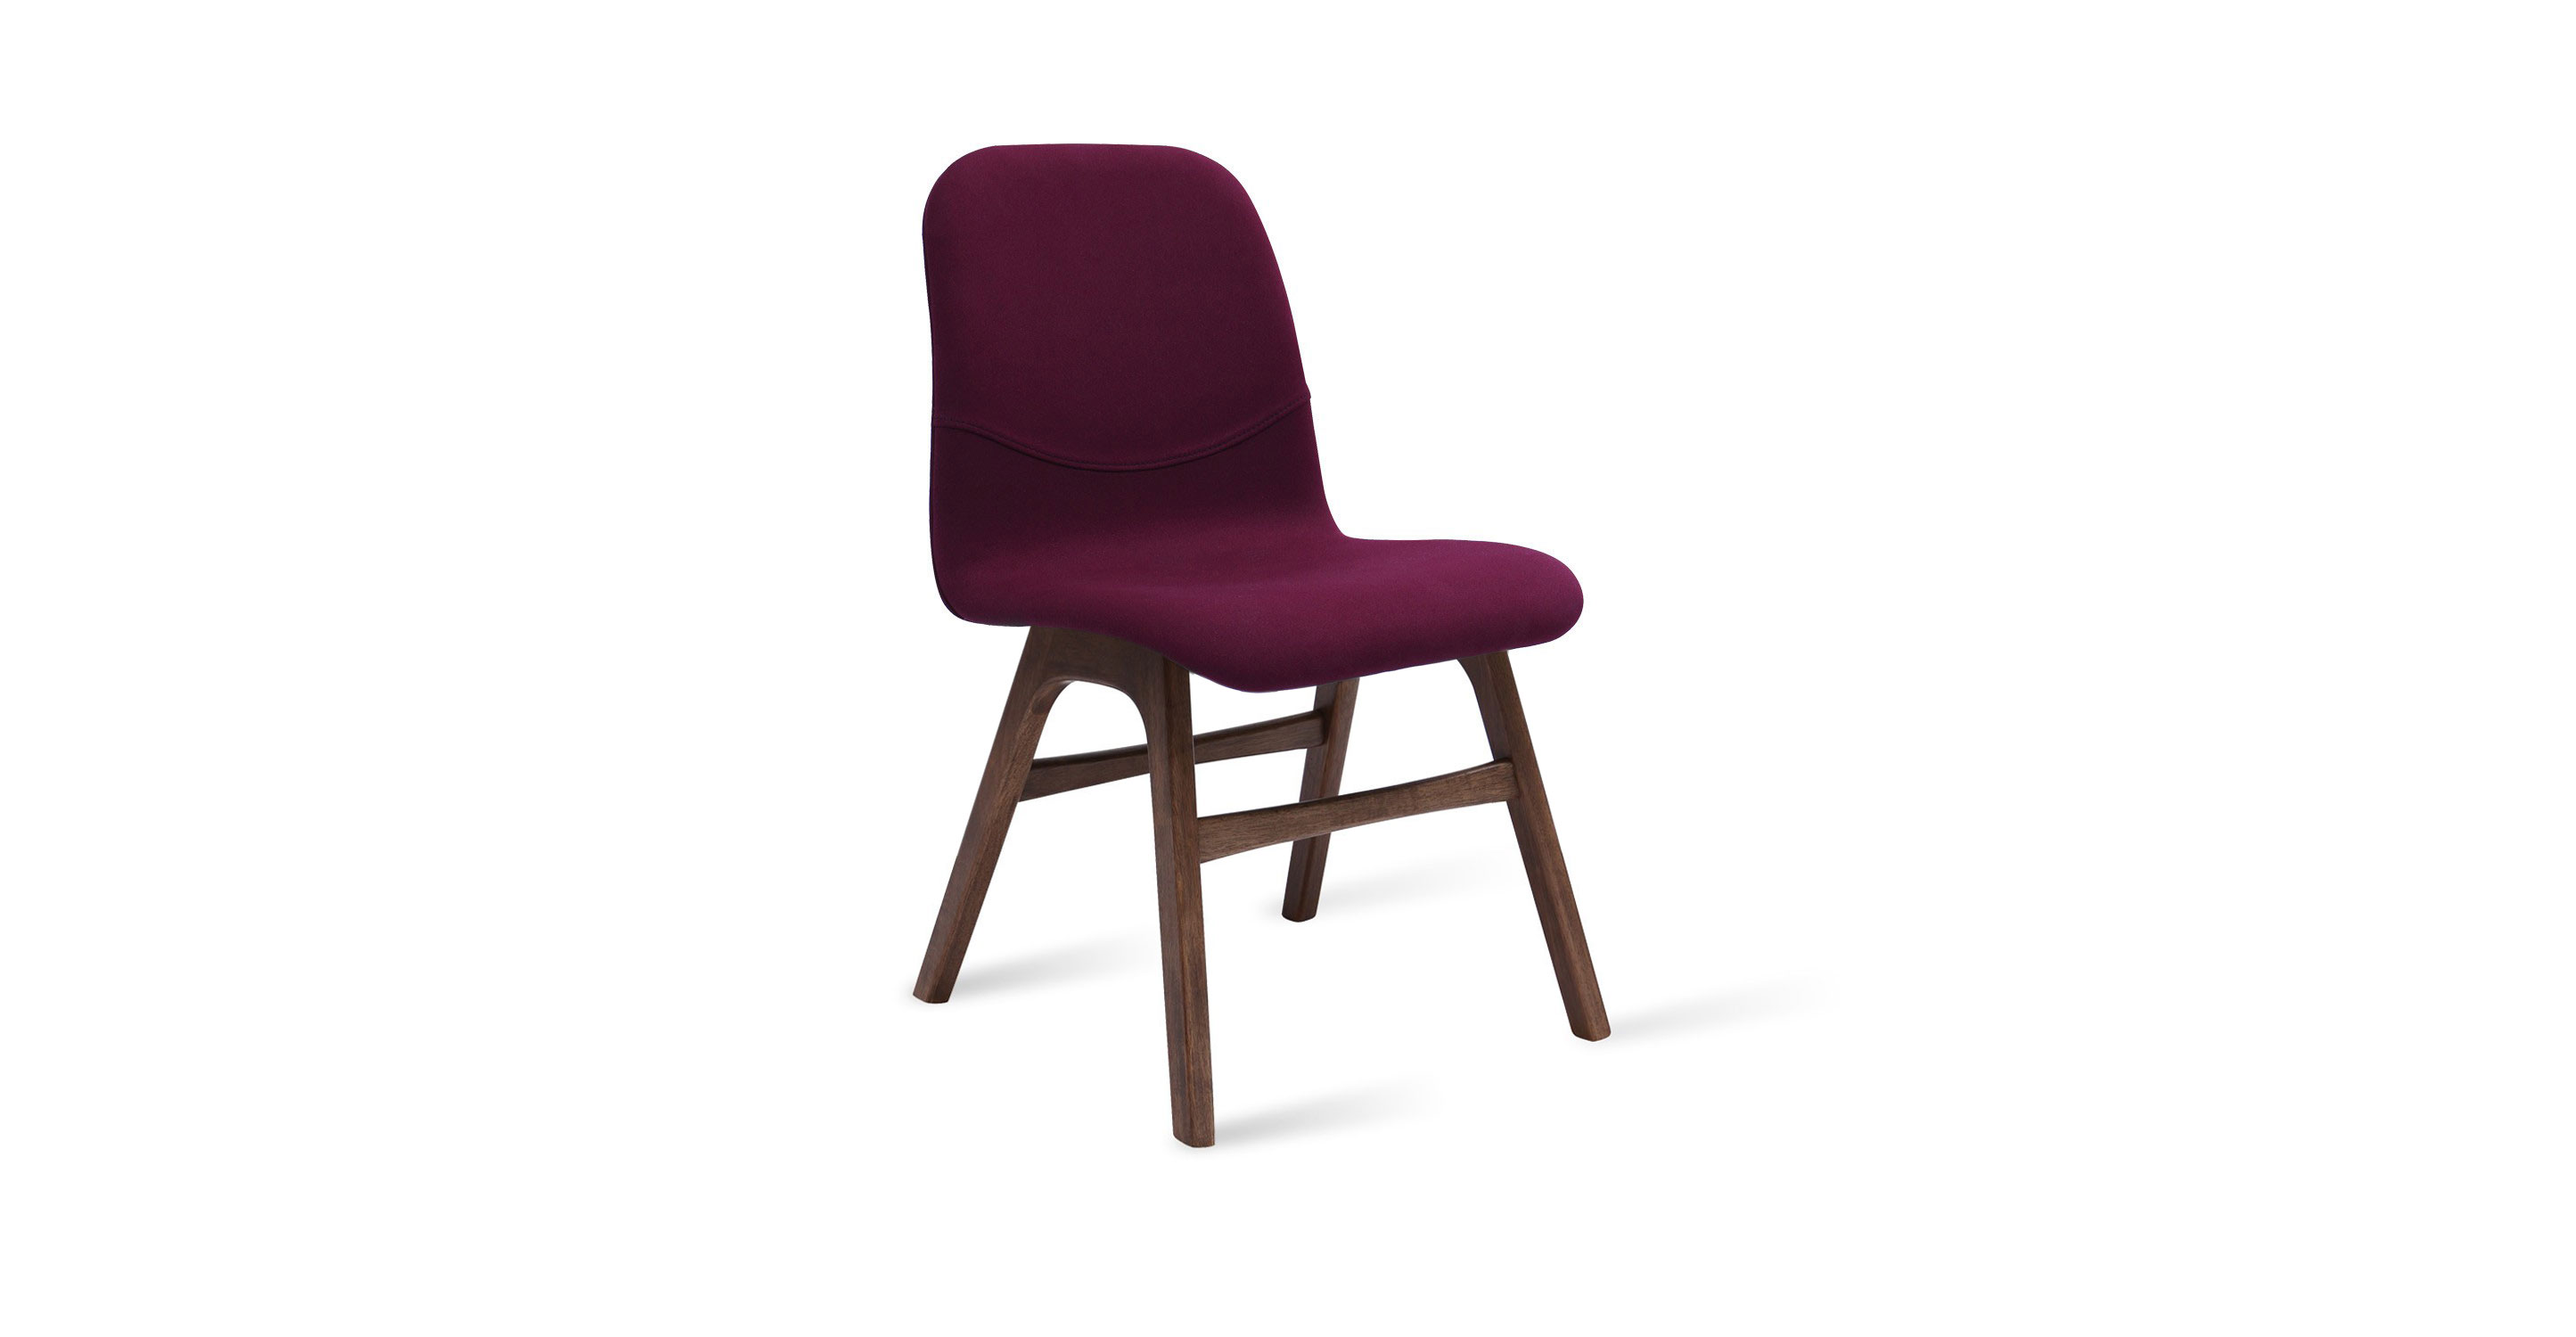 Baskets article modern mid century and scandinavian furniture - Ava Ruby Fabric Walnut Dining Chair Dining Chairs